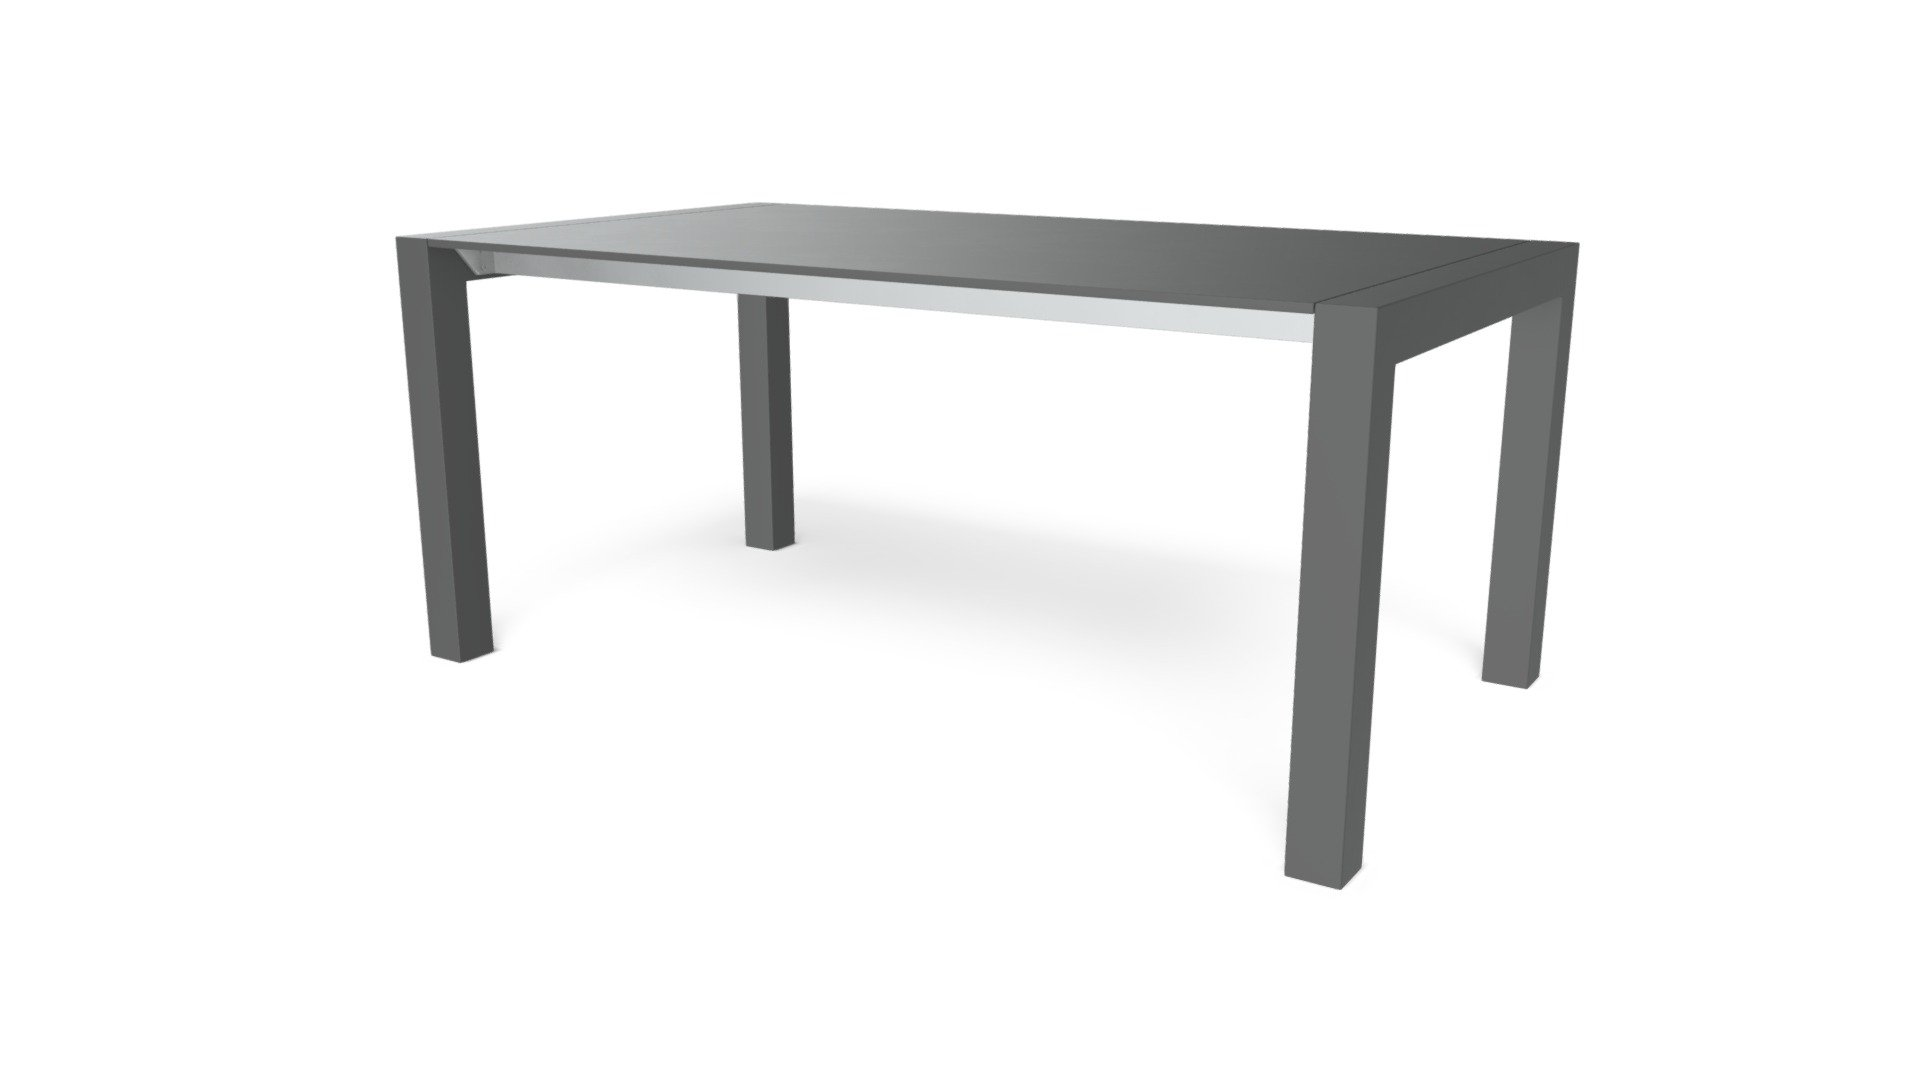 Bramante Extending Dining Table Matt Grey Download Free 3d Model By Made Com Made It Ebb2d9f Sketchfab